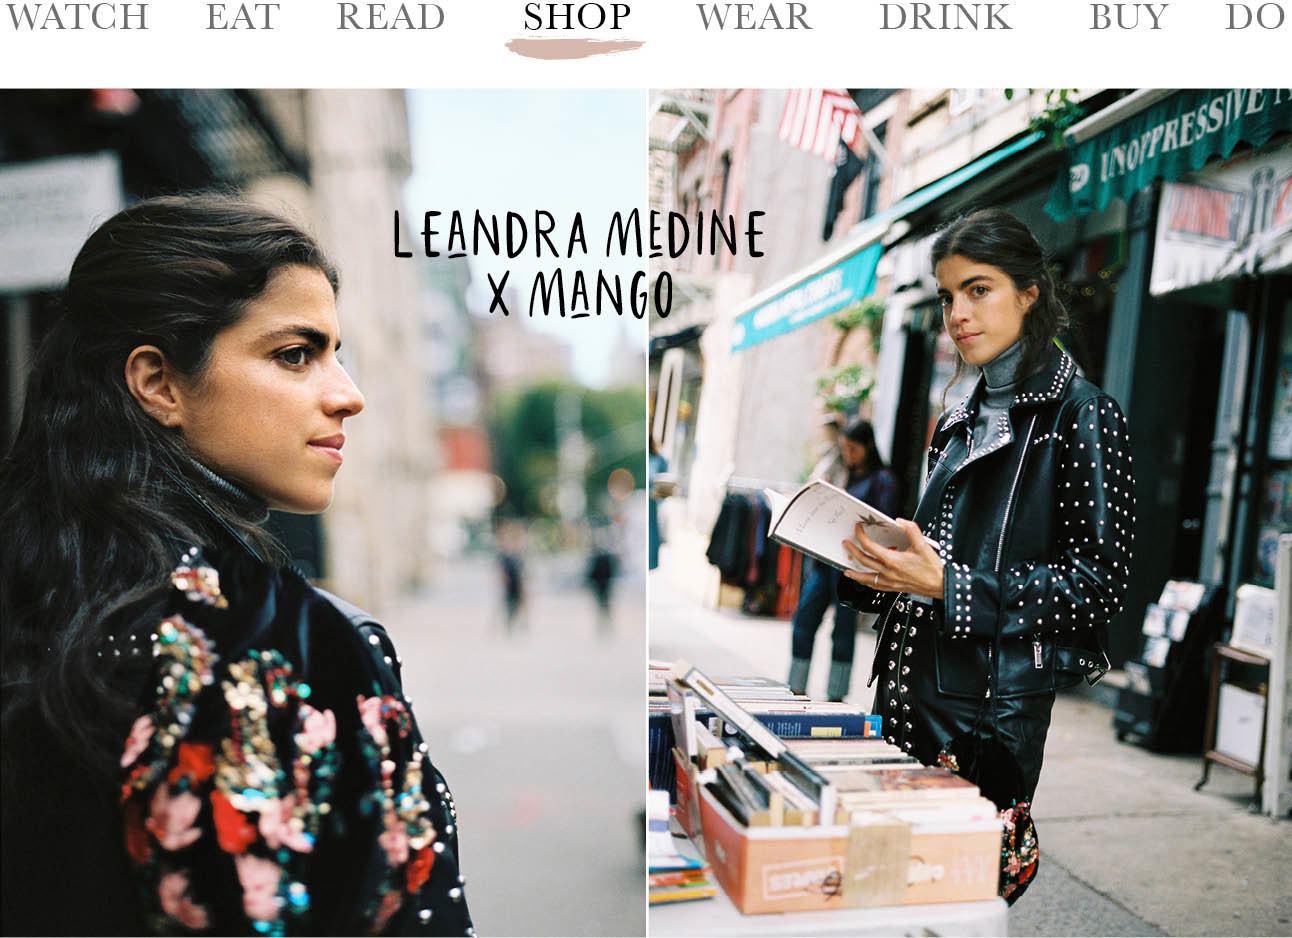 Today we shop - Leandra Medine x Mango